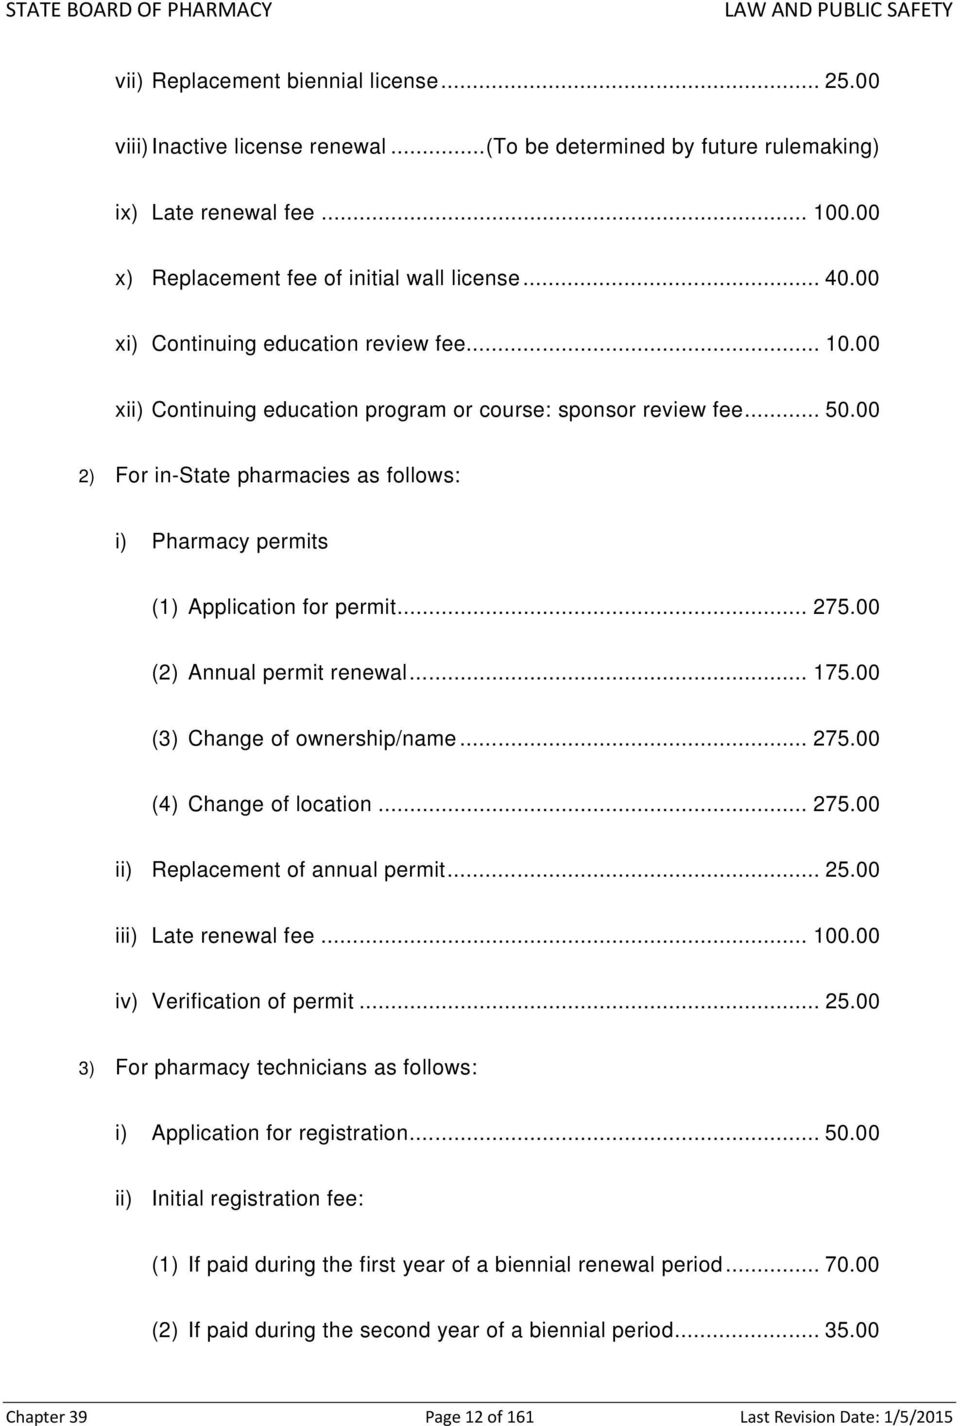 00 2) For in-state pharmacies as follows: i) Pharmacy permits (1) Application for permit... 275.00 (2) Annual permit renewal... 175.00 (3) Change of ownership/name... 275.00 (4) Change of location.